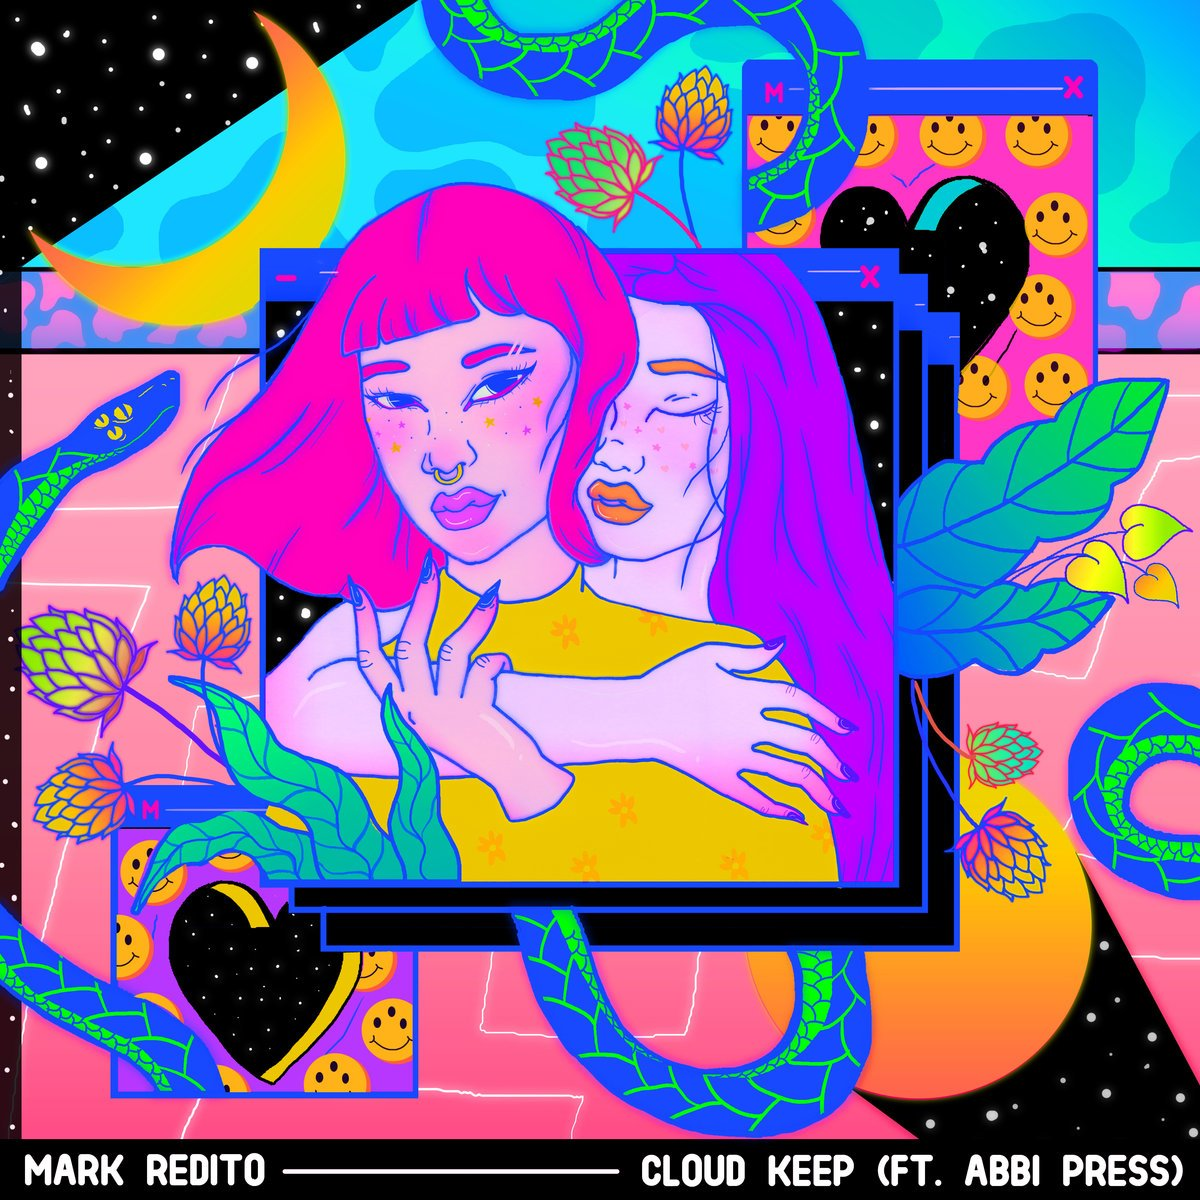 ".@markredito's ""Cloud Keep"" is timeless electro-pop- who wouldn't want that? https://t.co/3TWbG70aOw https://t.co/5tZfk38doX"